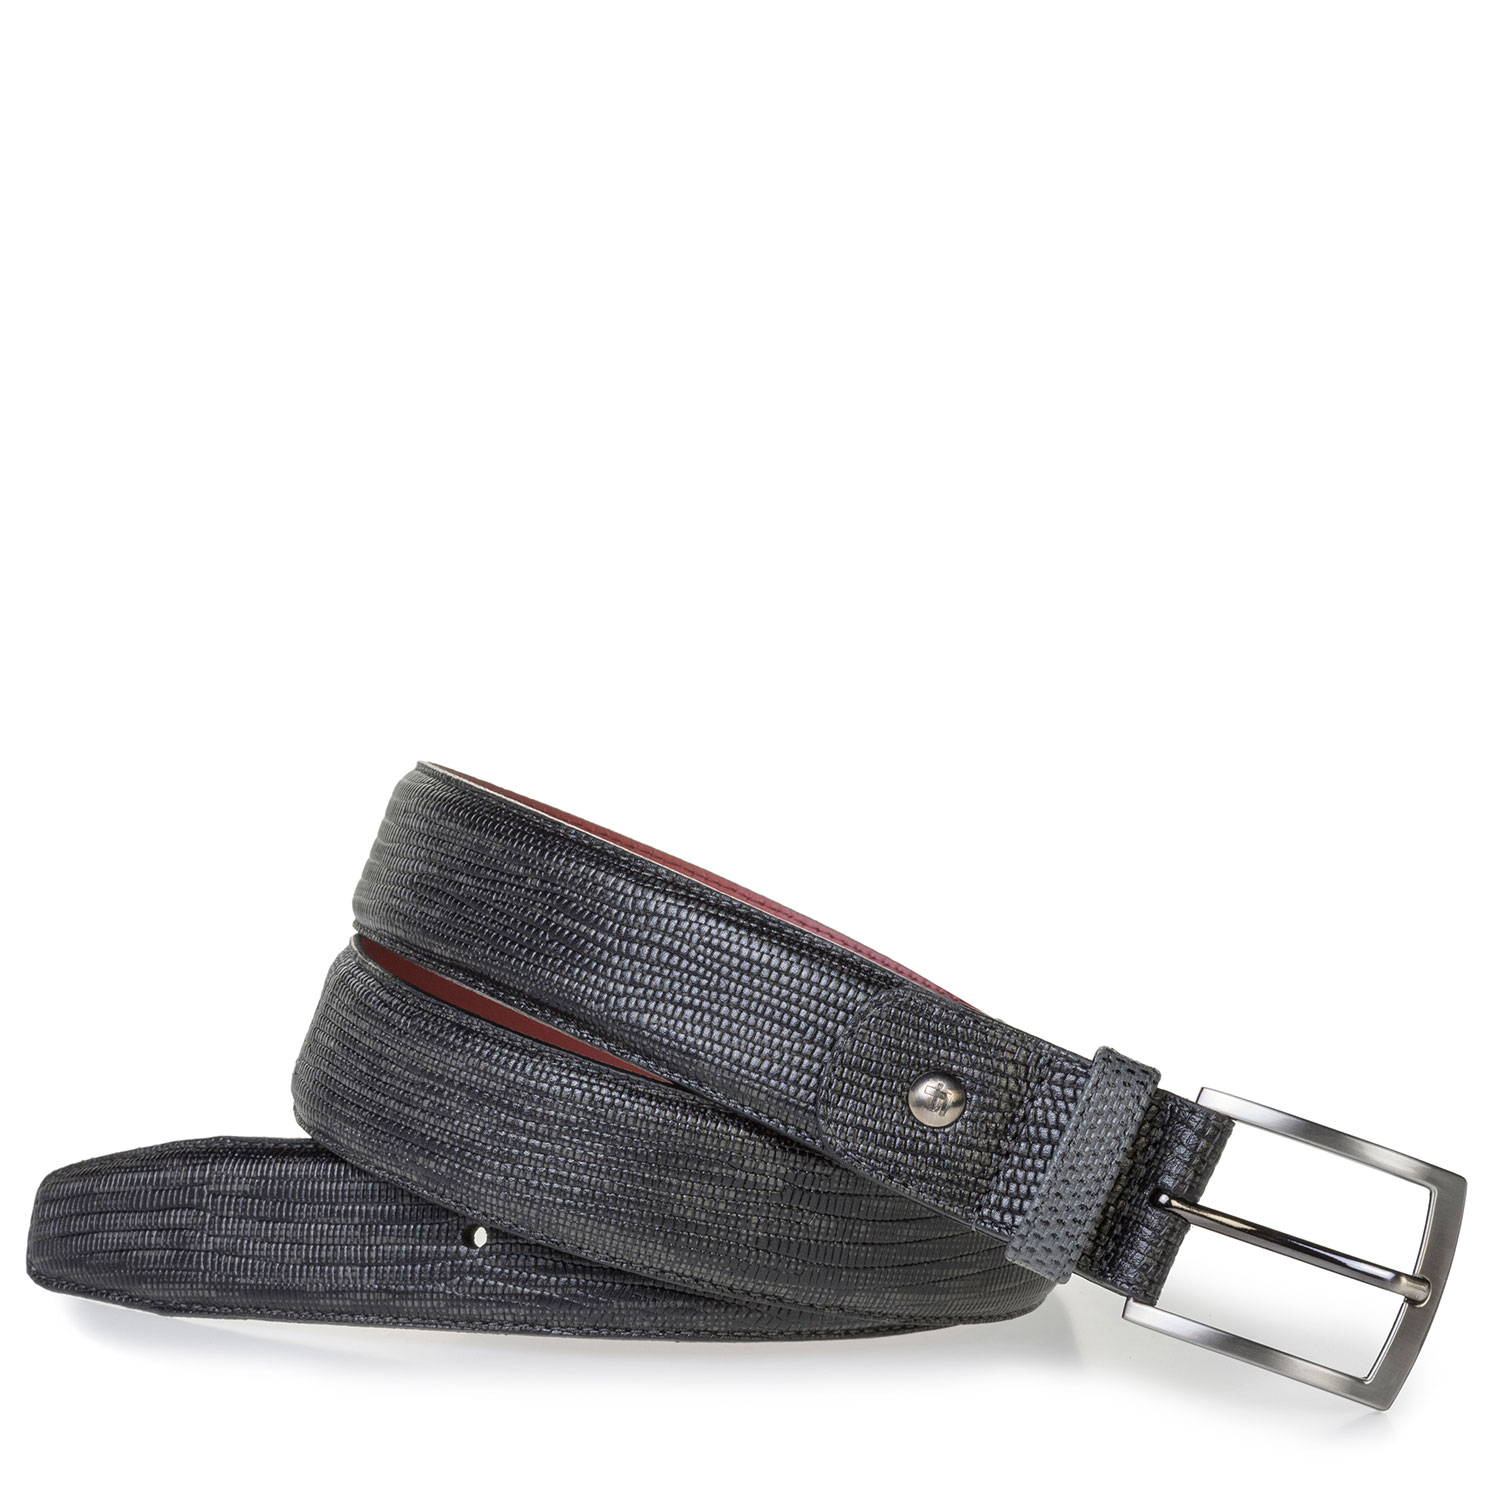 75188/59 - Grey leather belt with lizard print